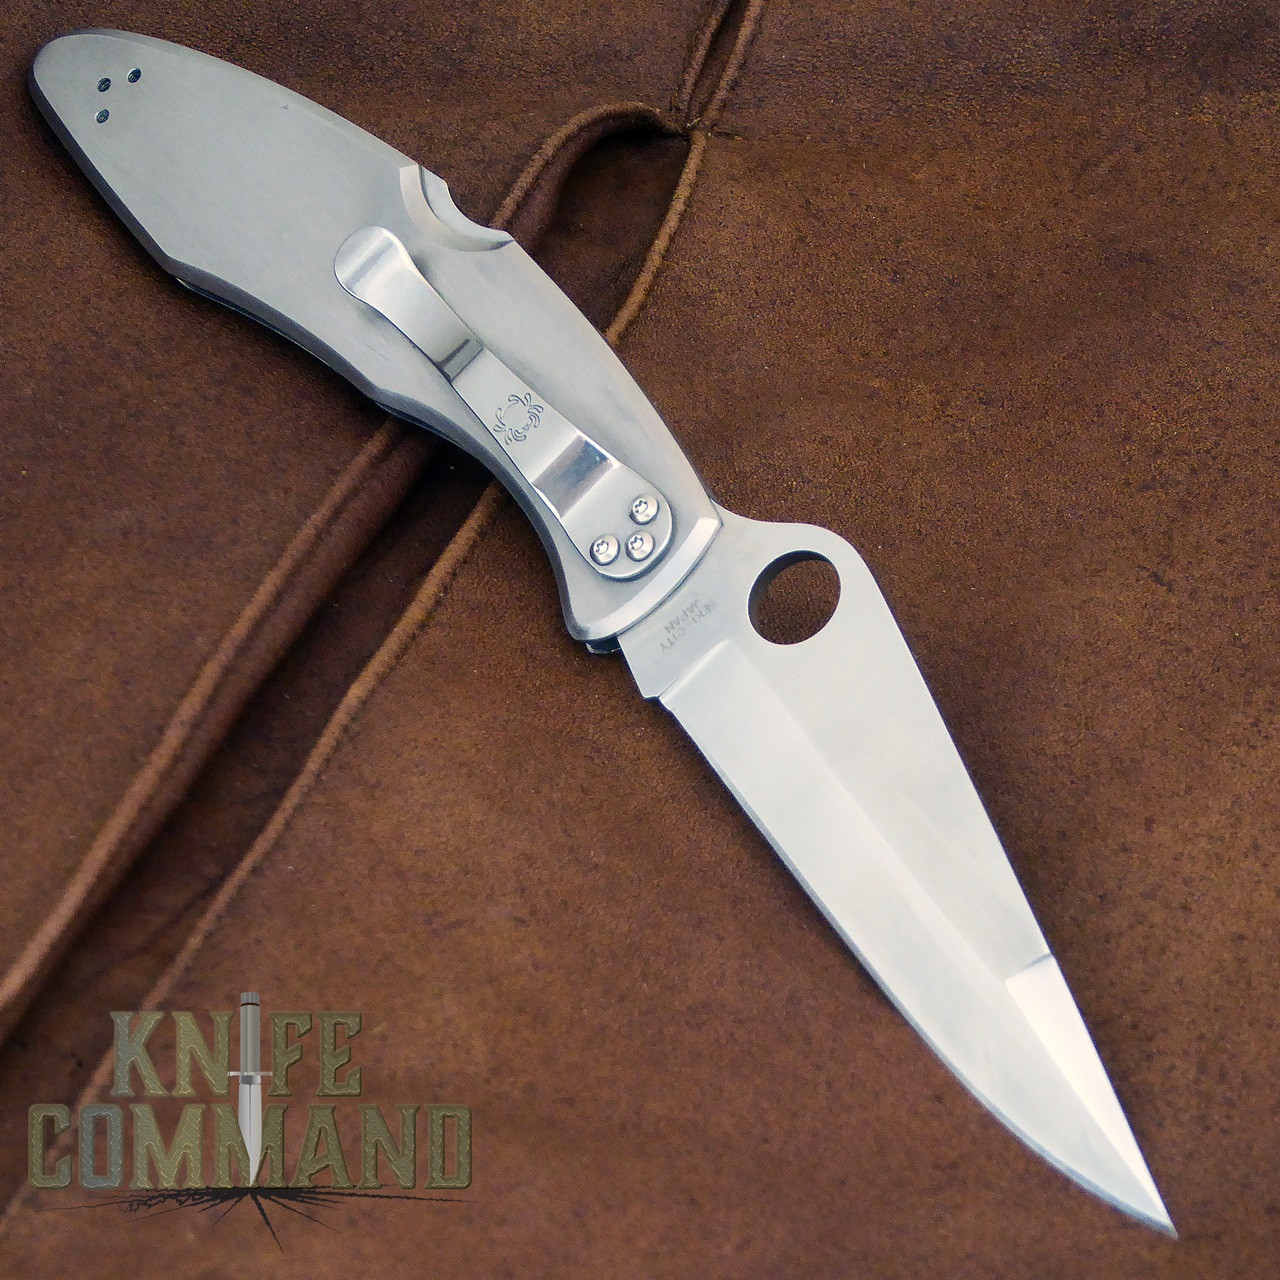 Spyderco Police Santa Fe Stoneworks Blue Line Special Knife.  Stainless steel knife with pocket clip.